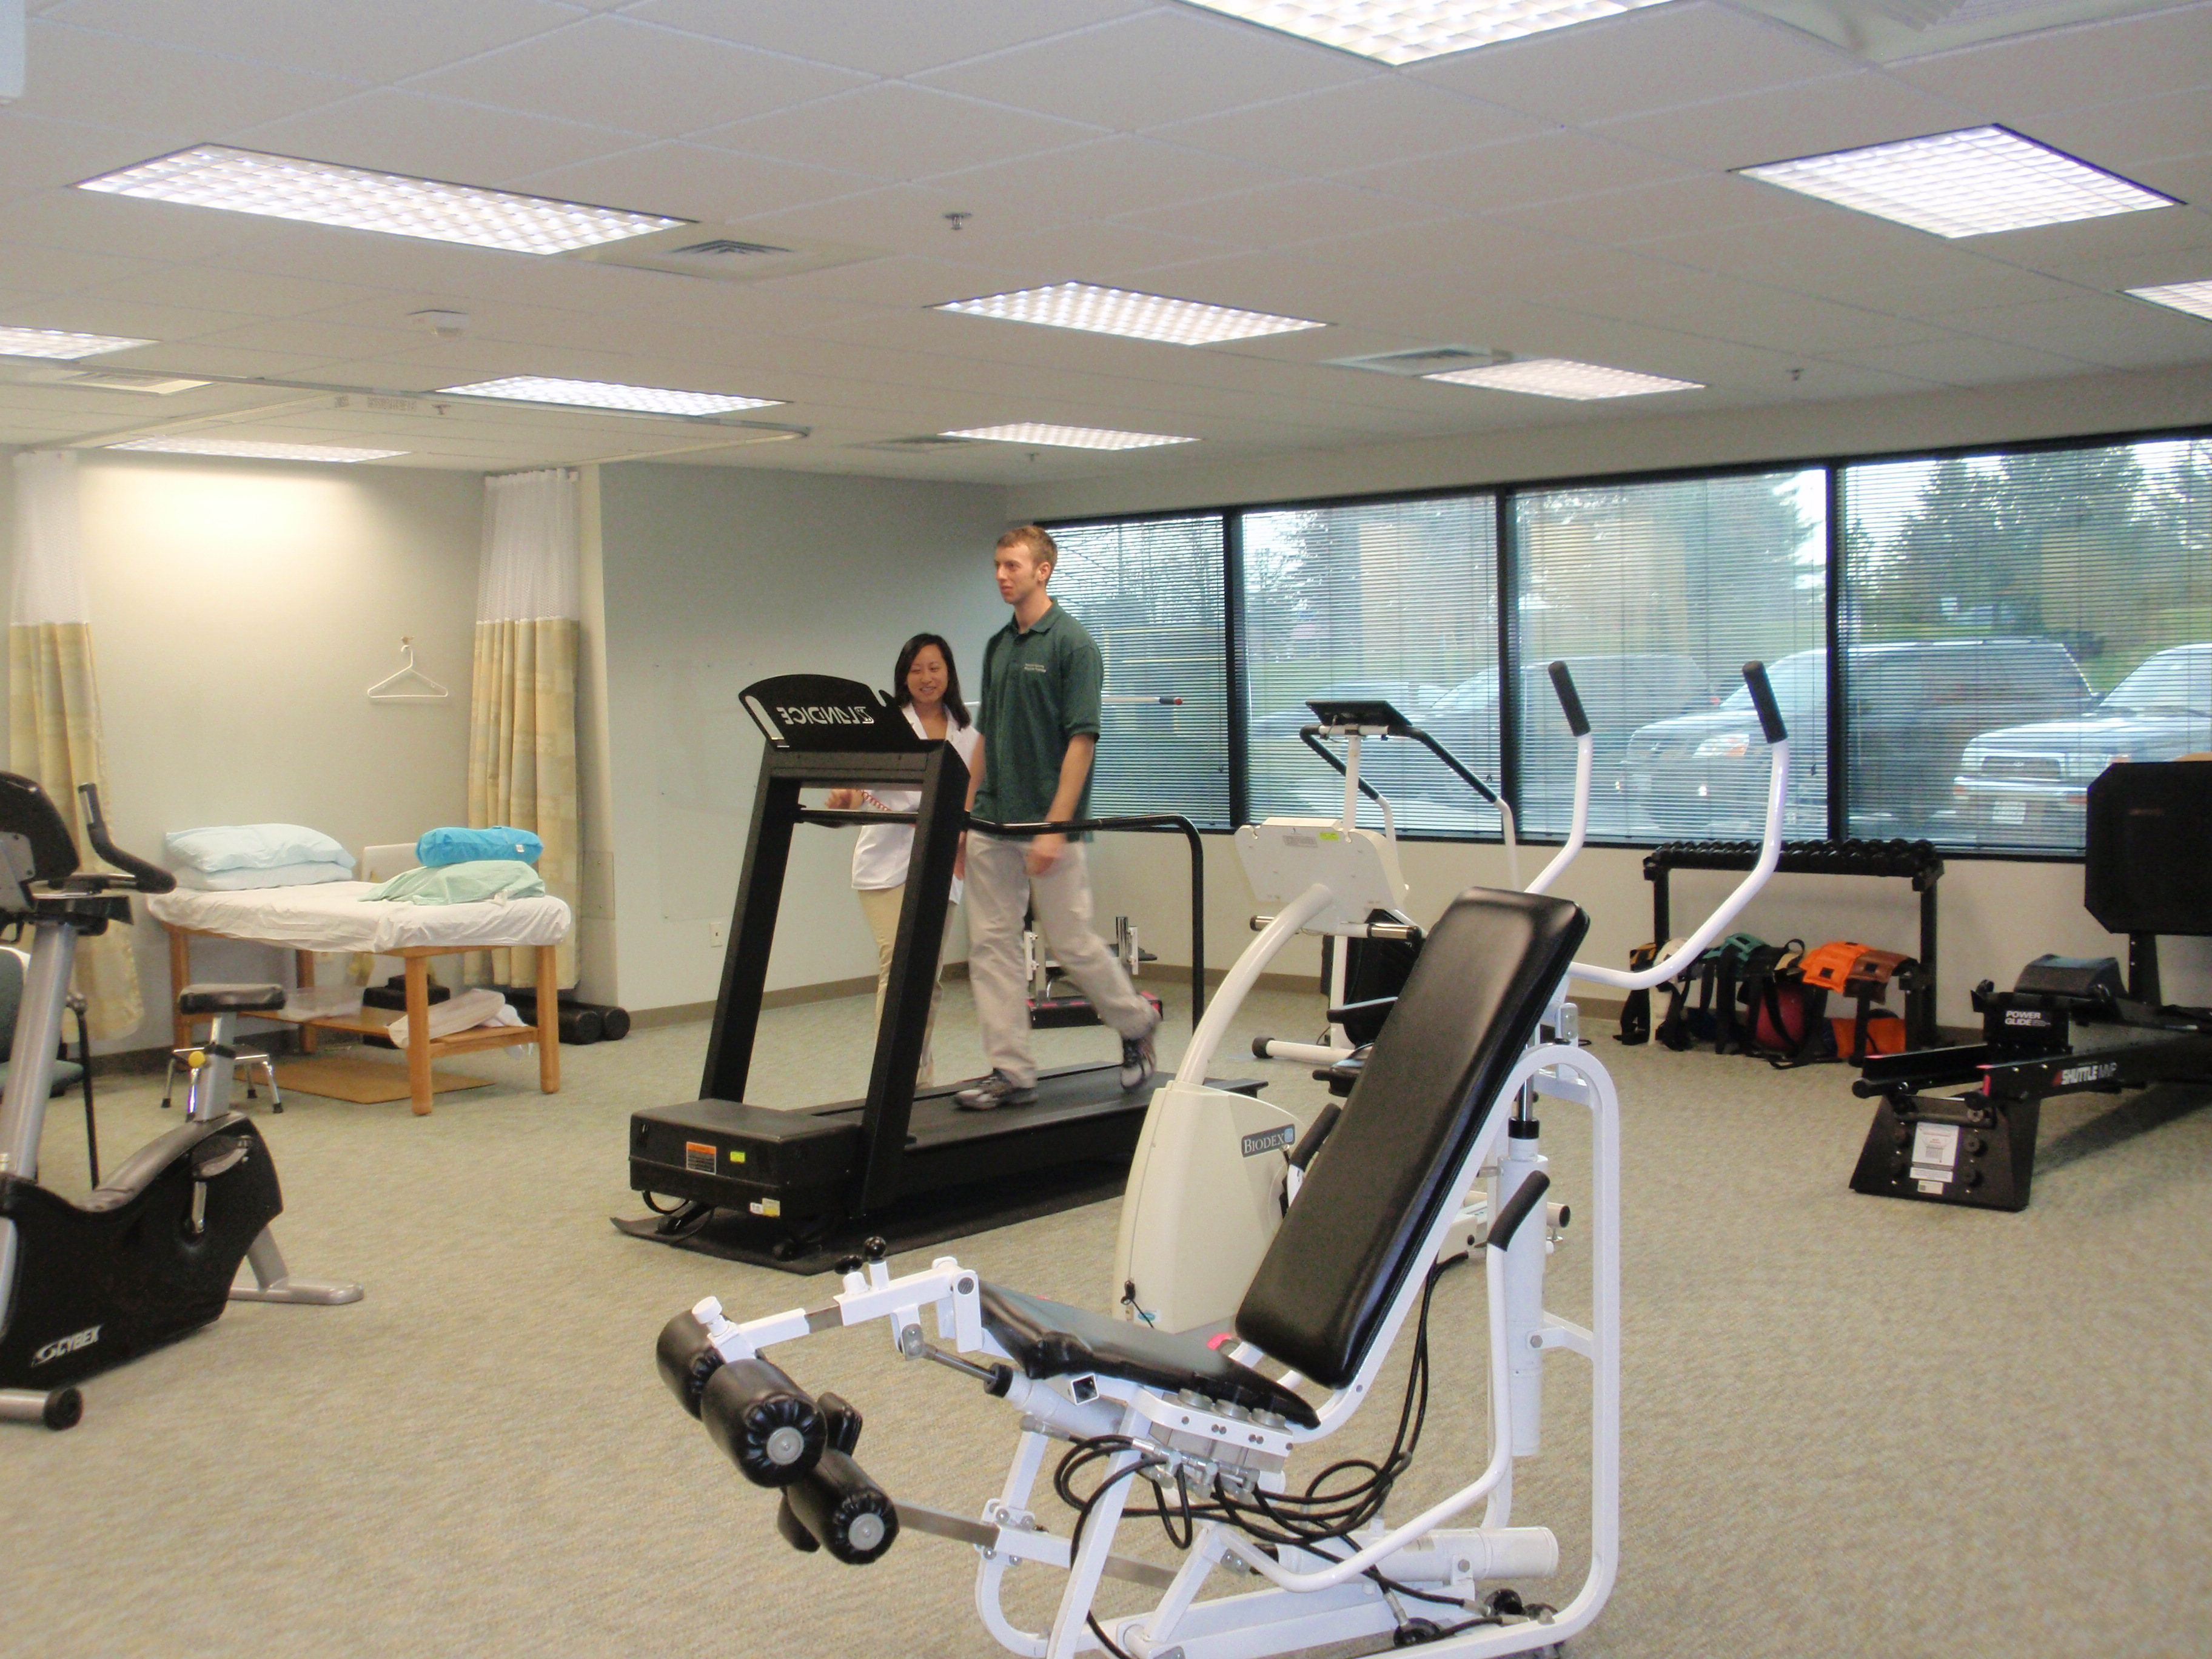 About physical therapy - Howard County Physical Therapy Gym 3